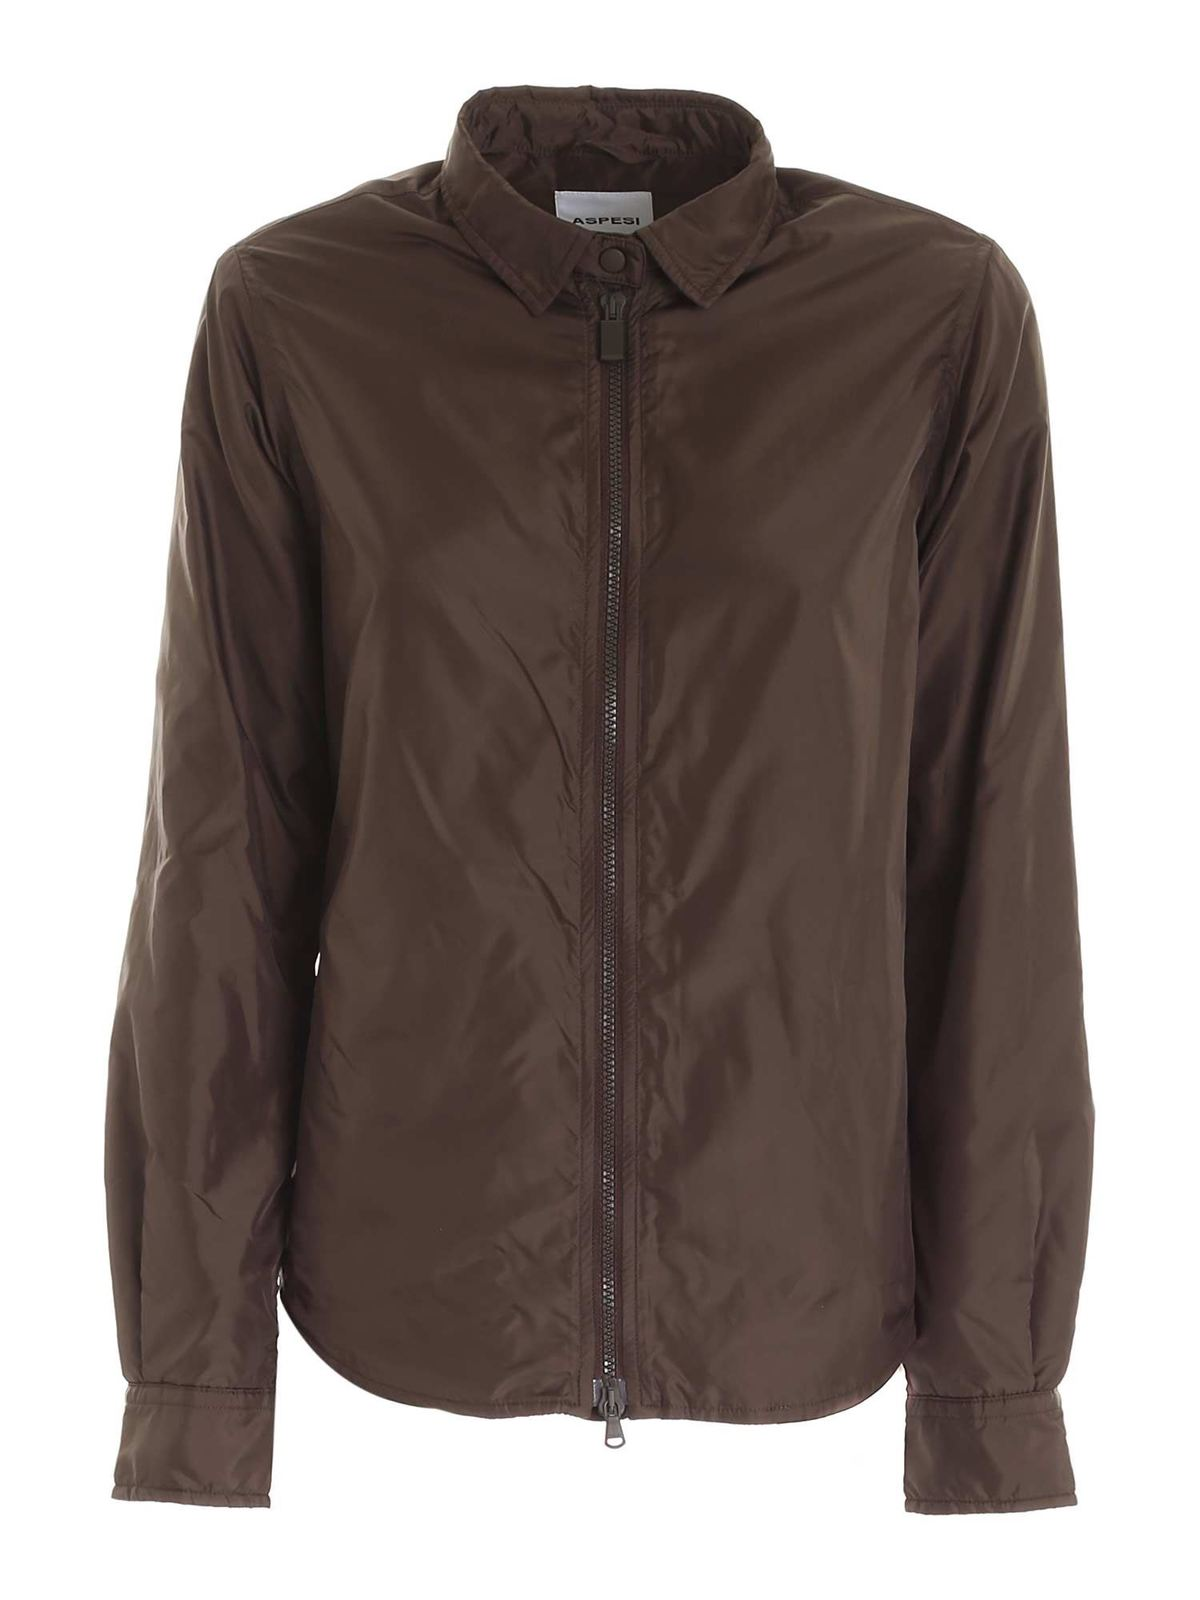 Aspesi TOMINO JACKET IN BROWN